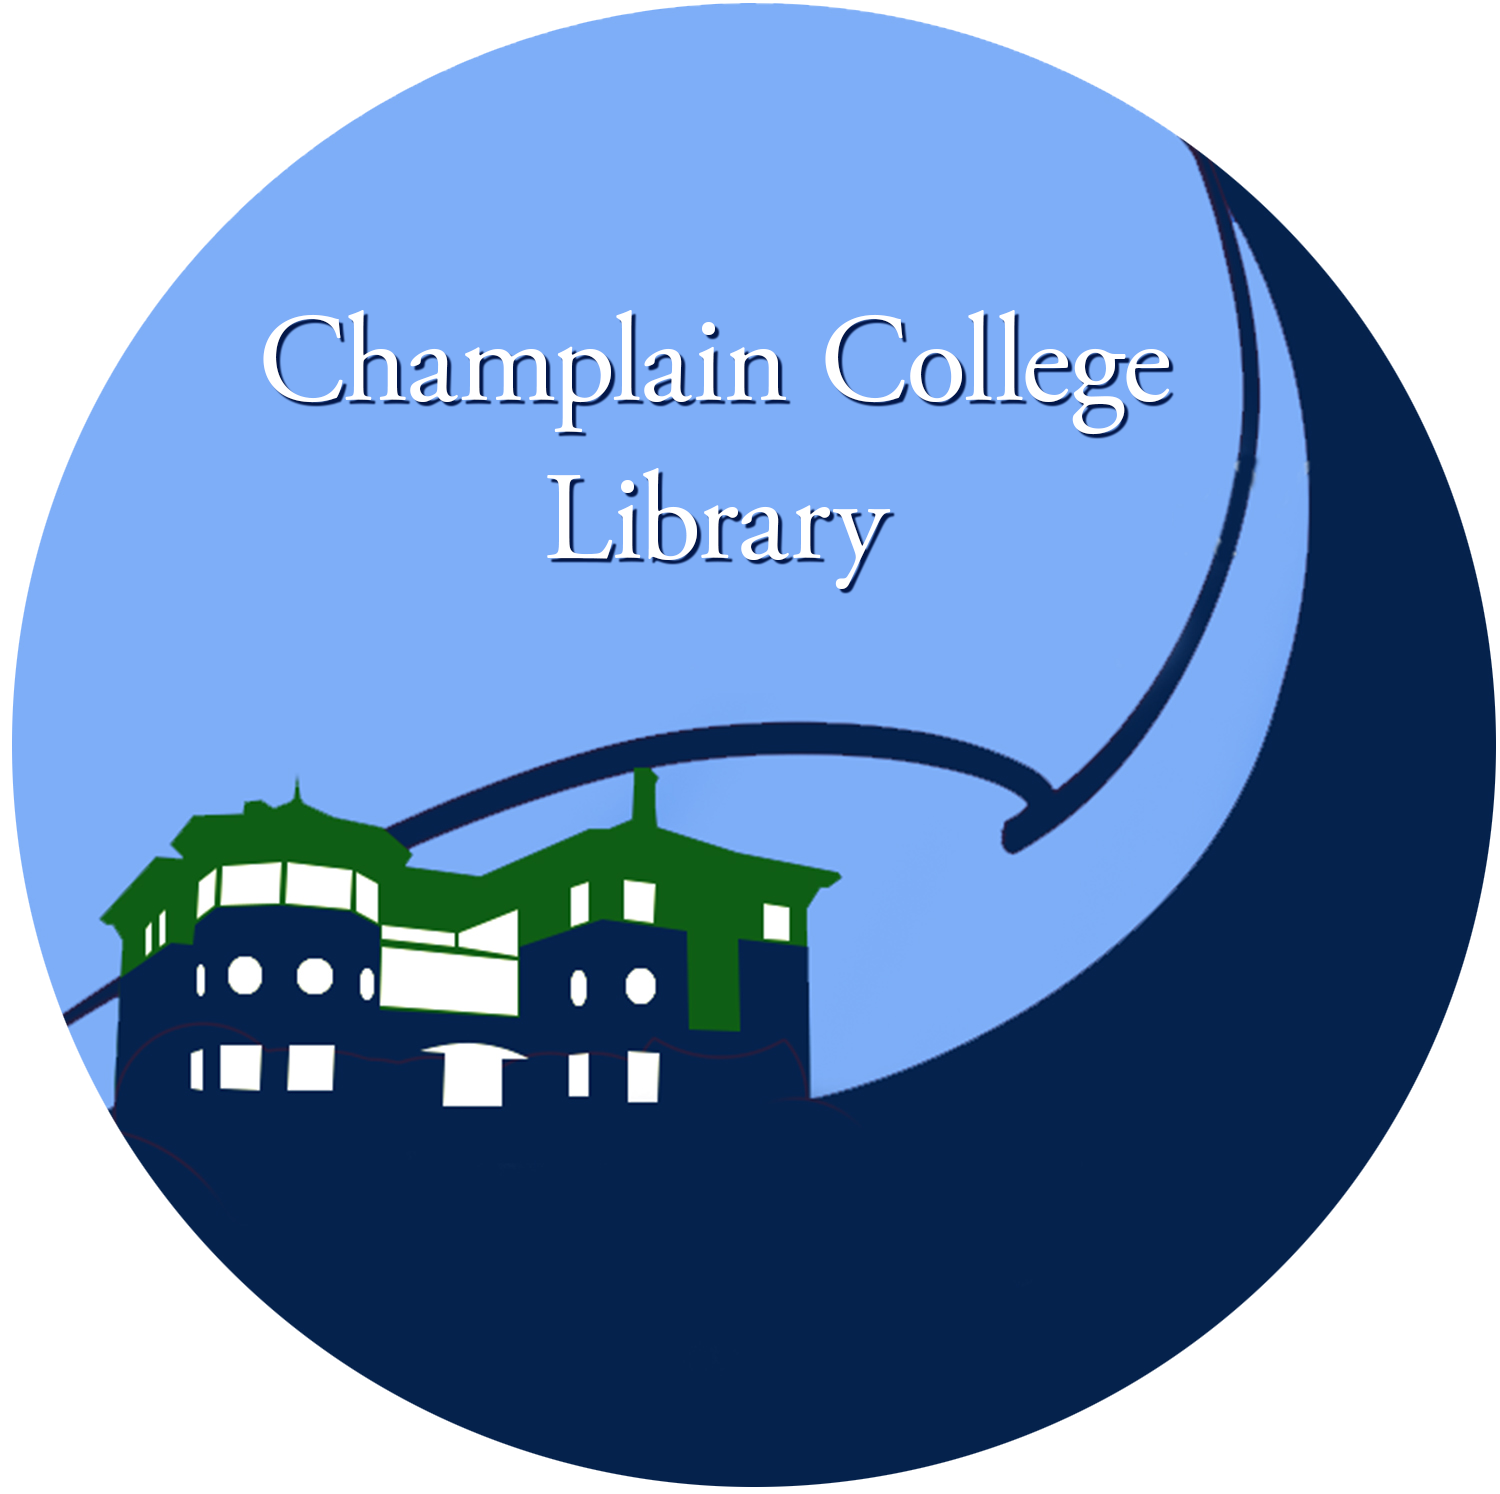 Champlain College Library logo, depicts stylized version of the building